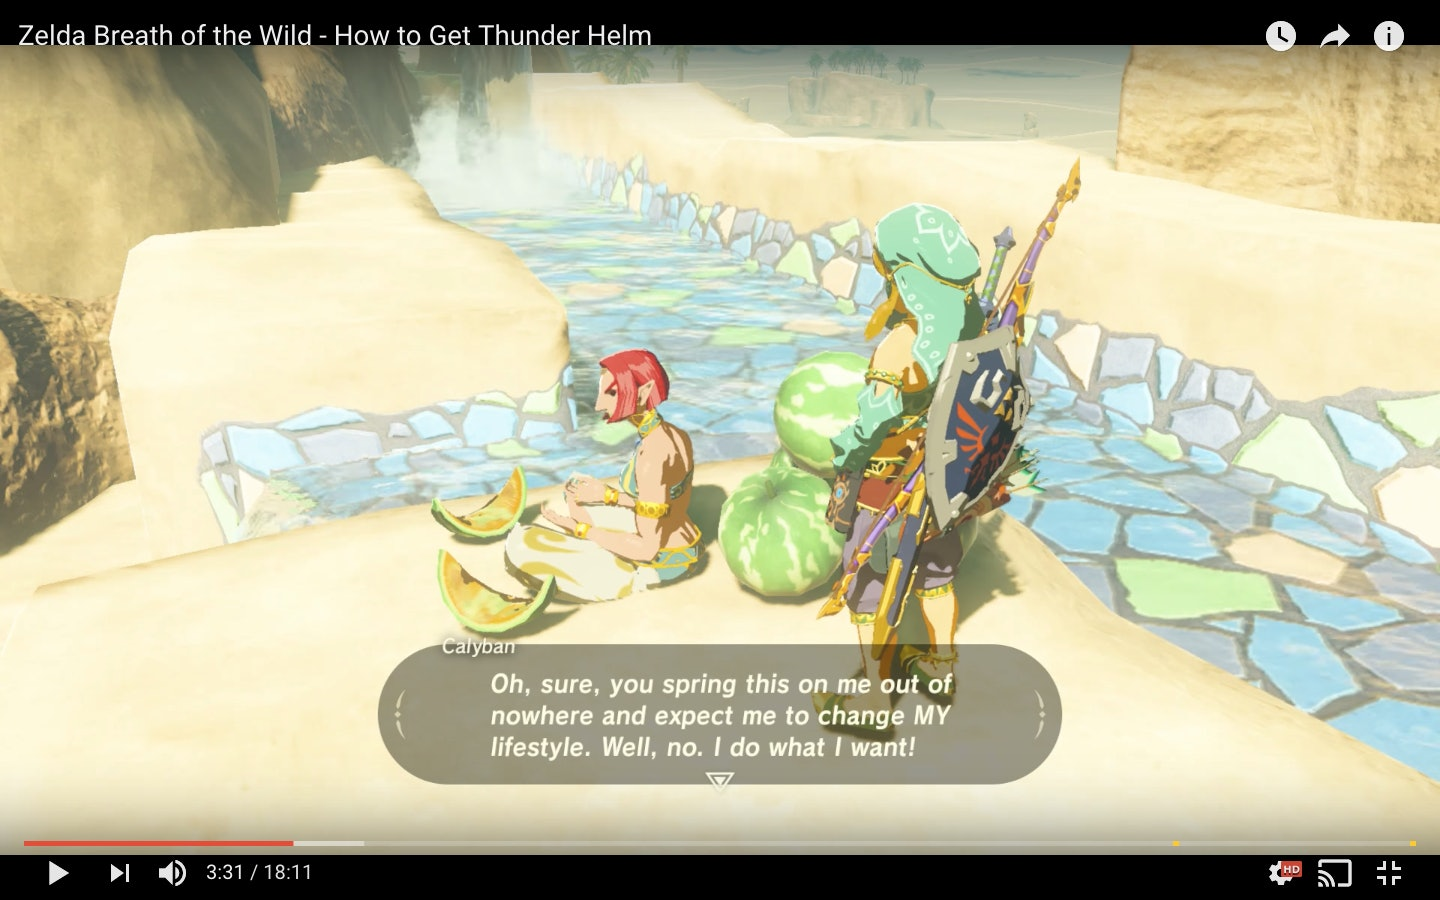 Zelda: Breath of the Wild' Thunder Helm Guide: How to get